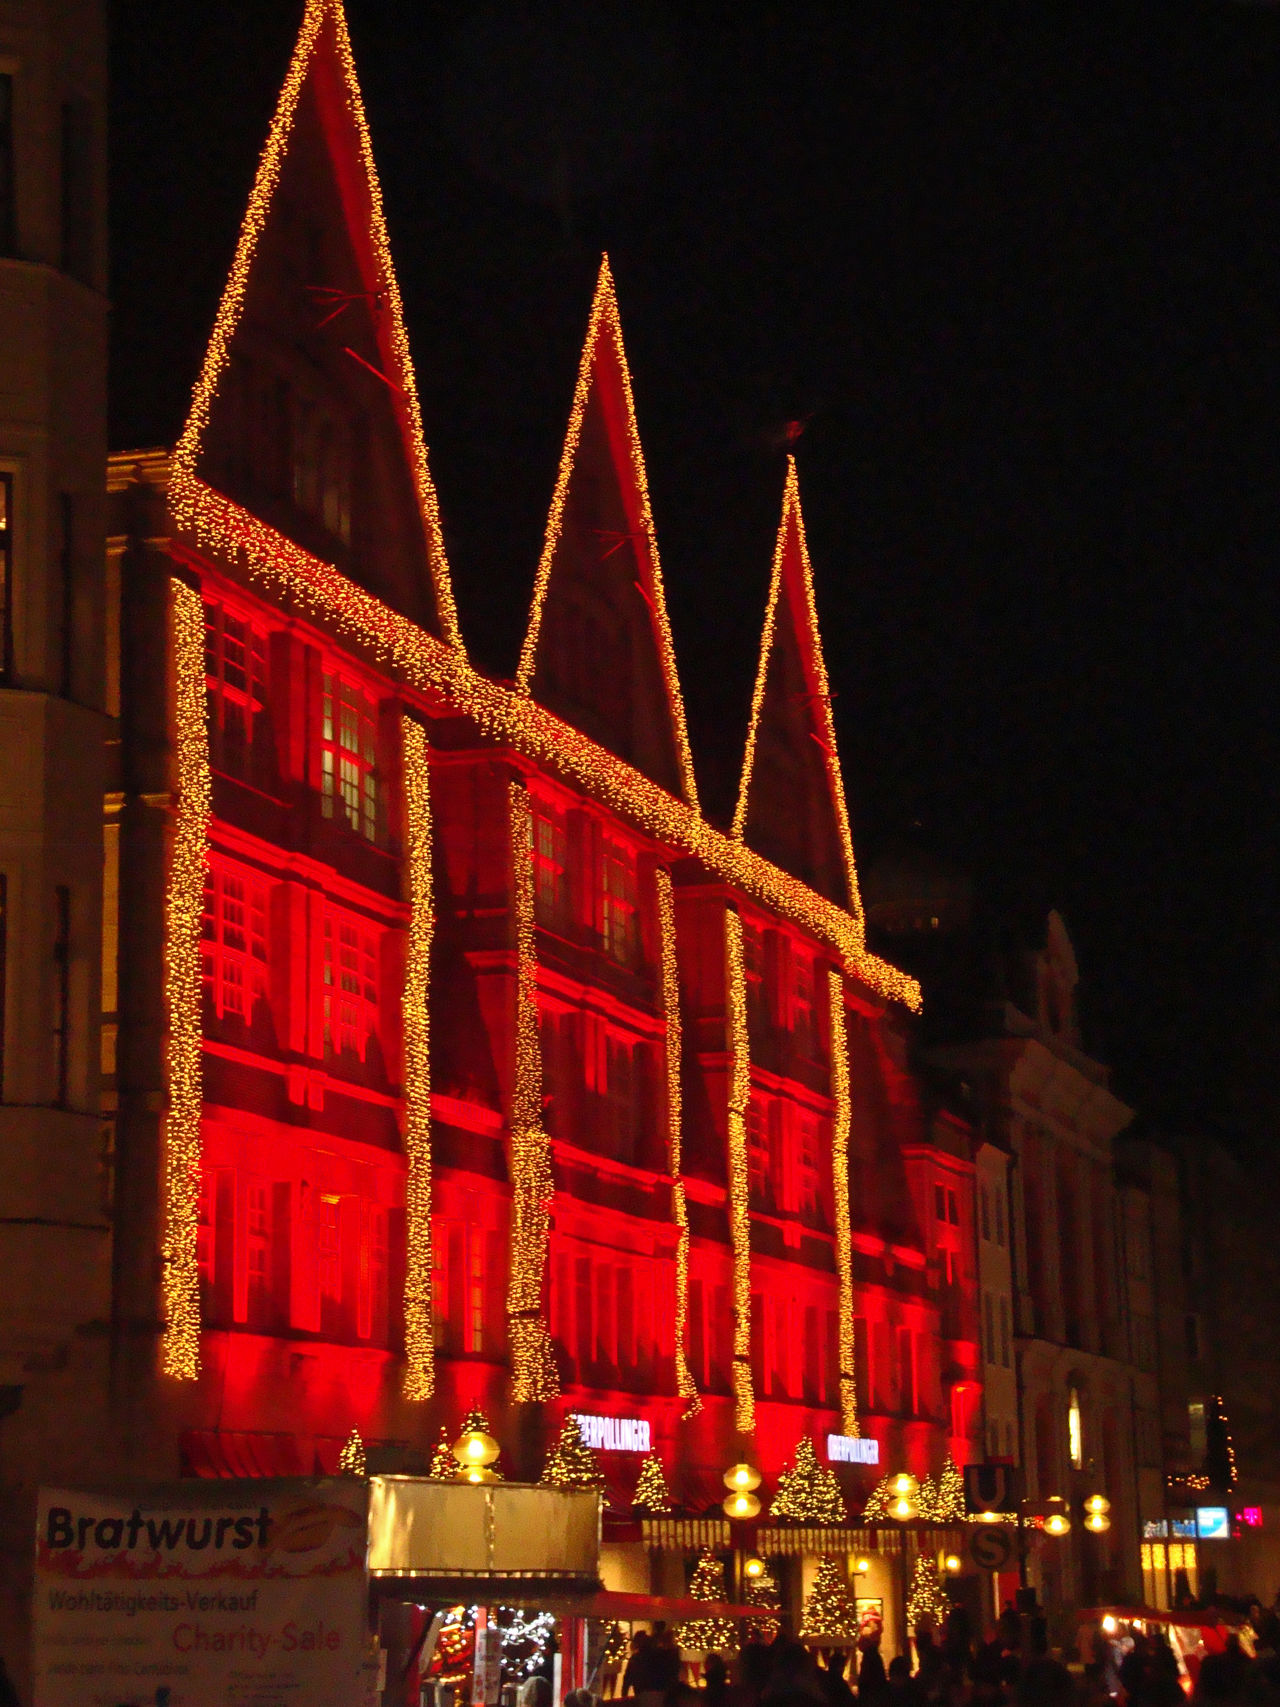 Building Christmas Decorations Christmas Decorations💙❤️ Christmas In Munich Christmas Lights Christmas Lights!  Festive Festive Season In Munich Munich Munich Architecture Munich Christmas Munich Christmas Decorations Munich Christmas Lights Munich Festivities Outdoors Red And Gold Lights Red Light